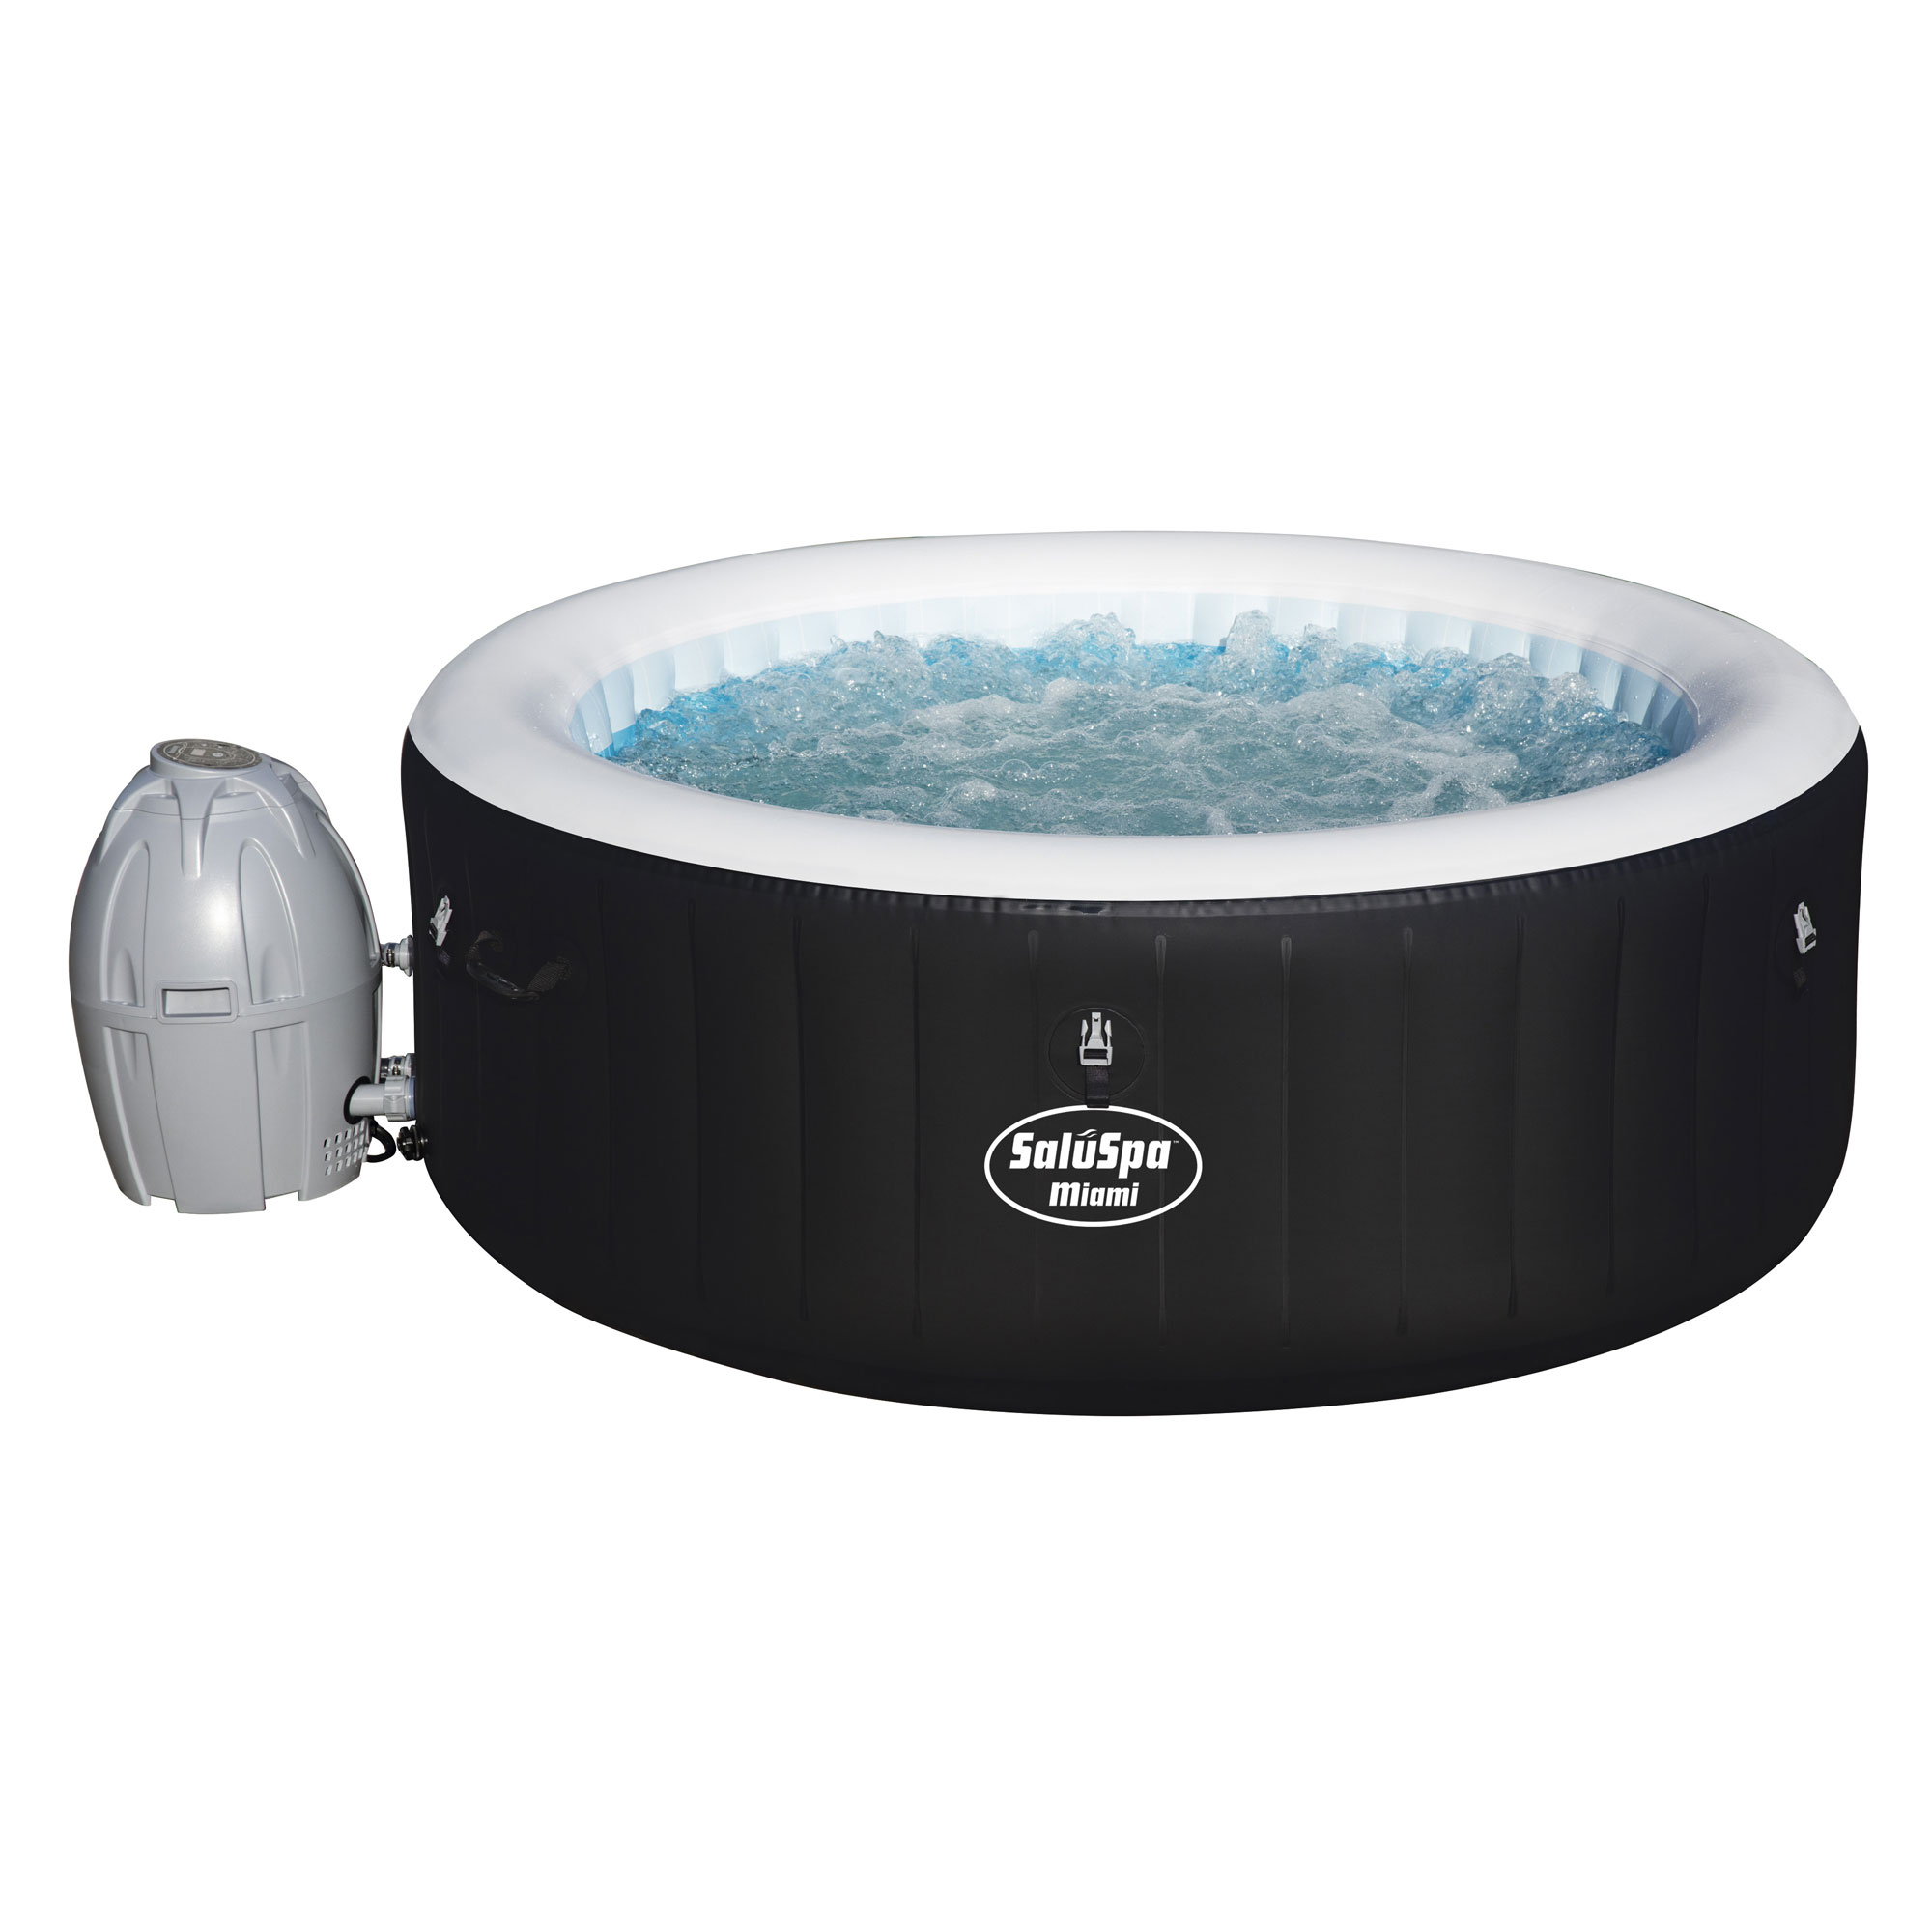 monalisa whirlpool outdoor m tubs product tub jacuzzi spa hot dkzelwkrljuf used balboa person china